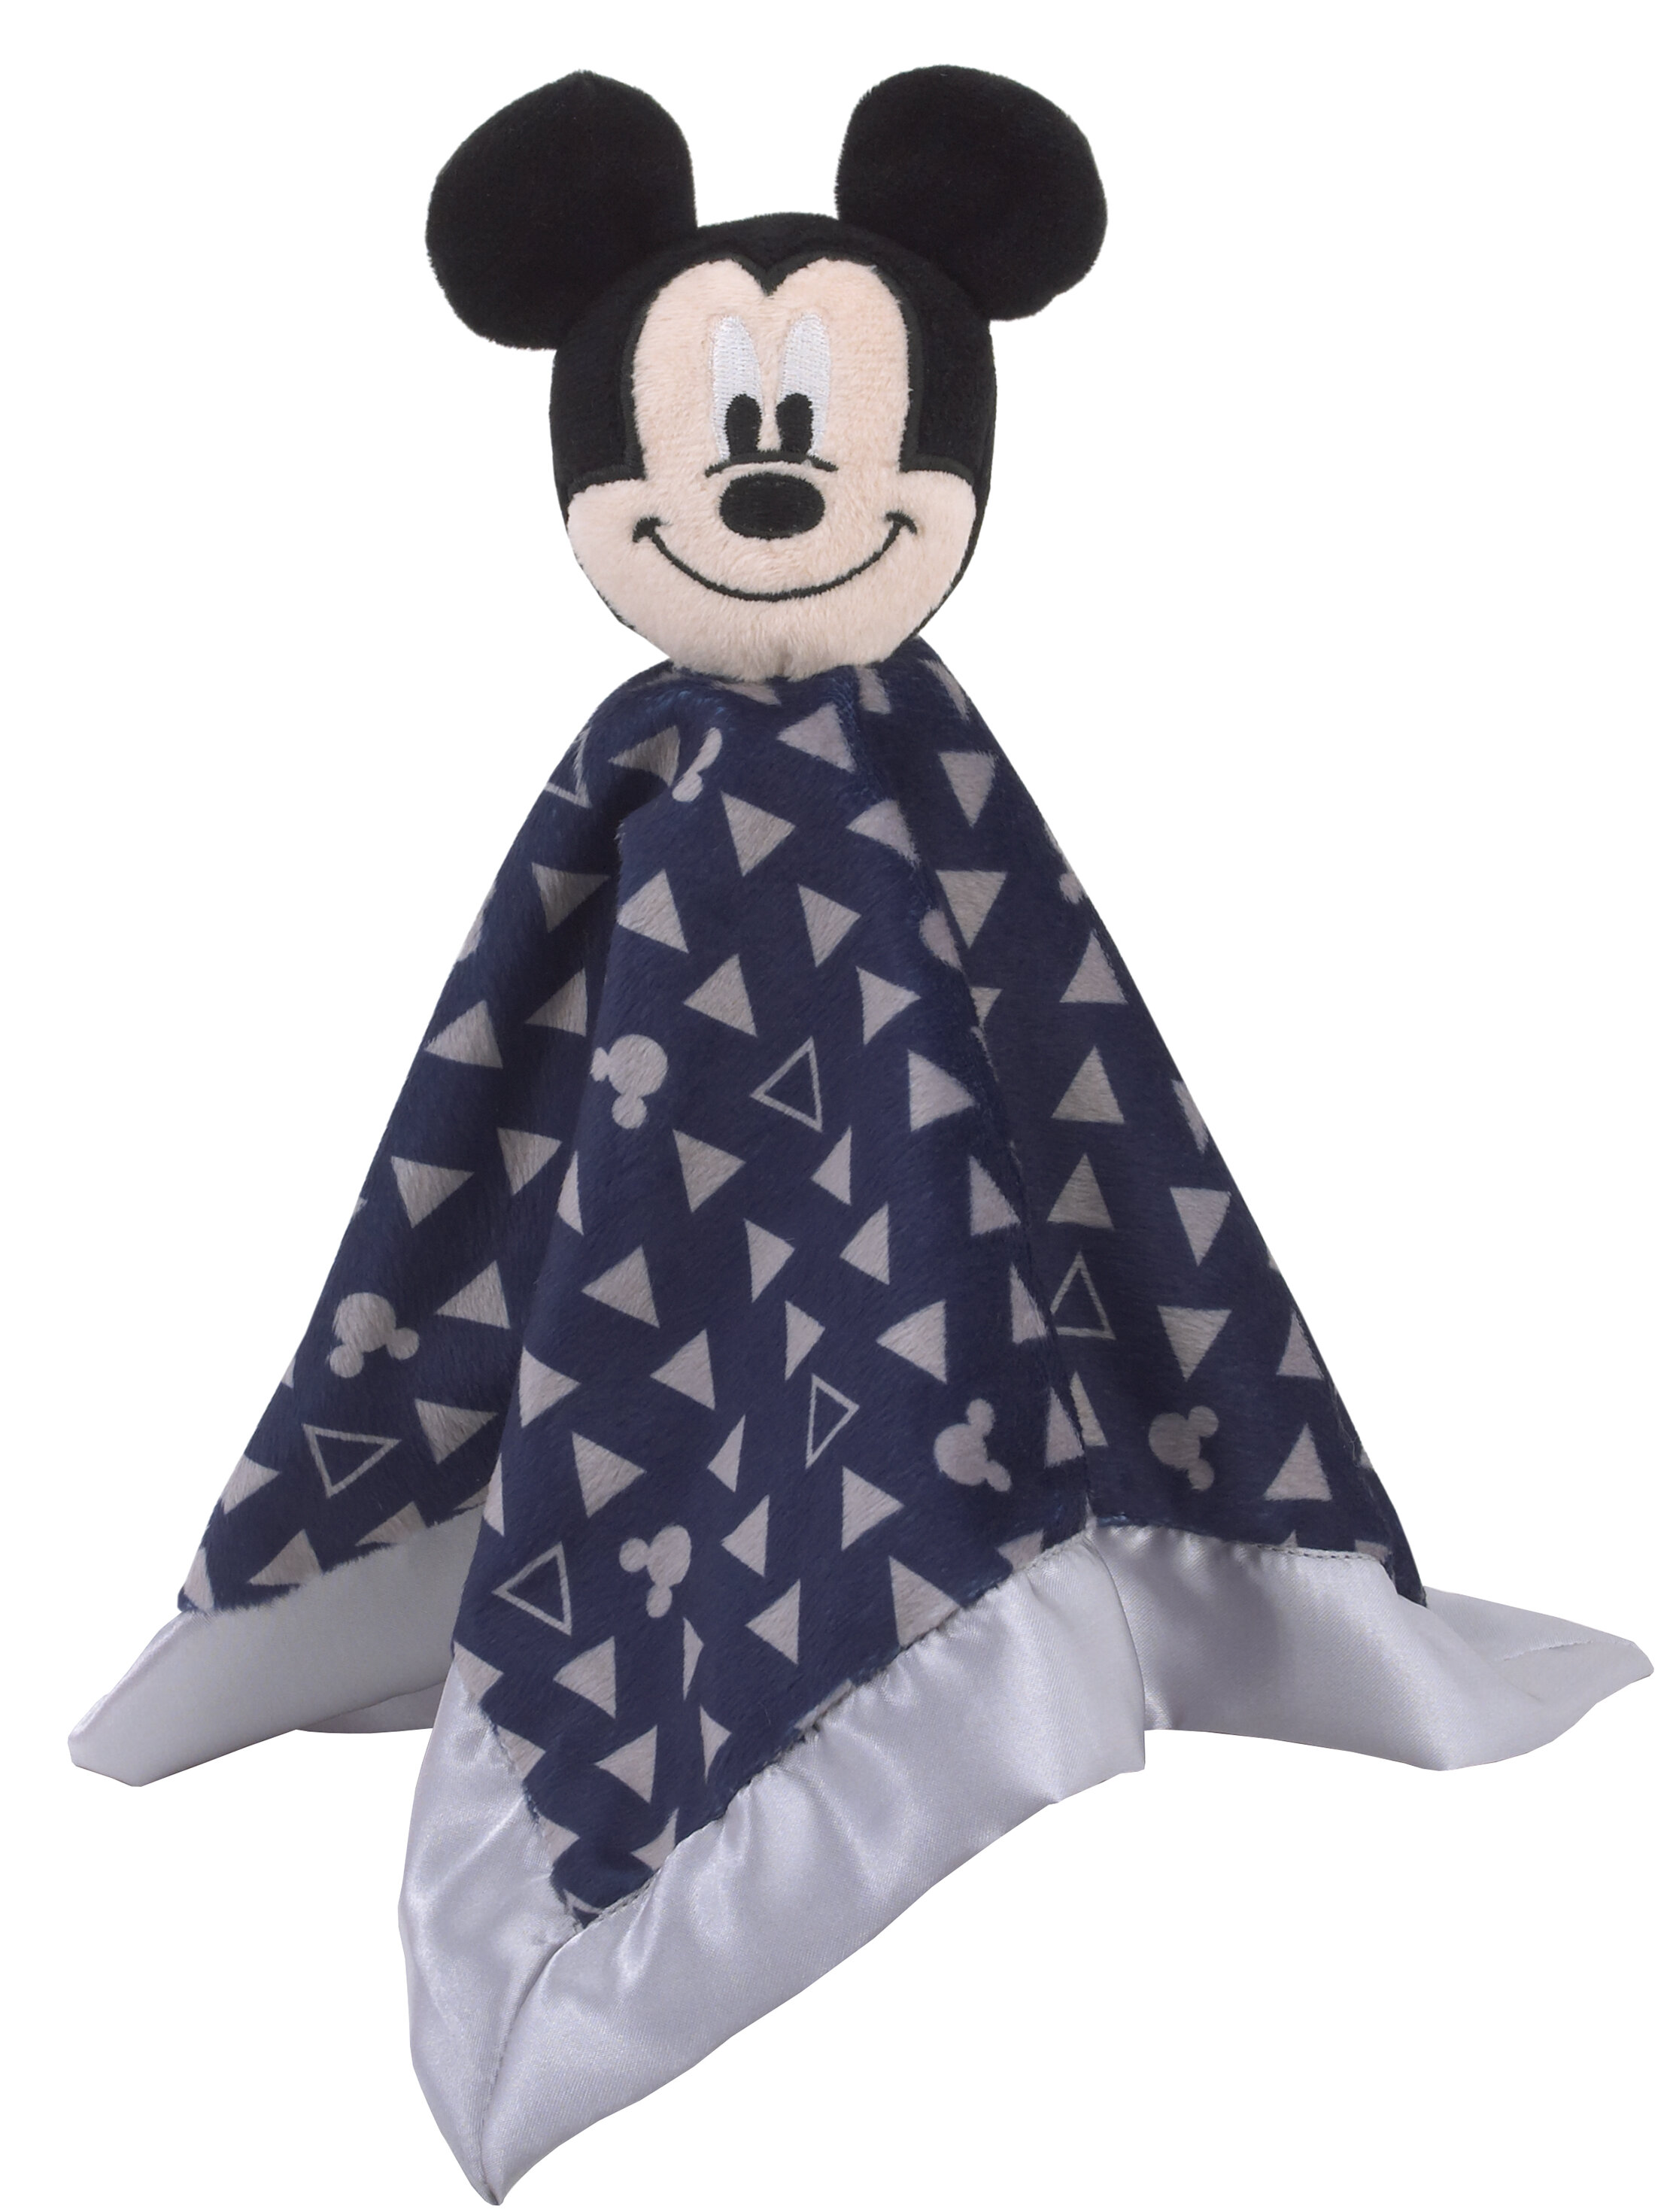 523d45a716a51 Disney Mickey Mouse Lovey Security Blanket